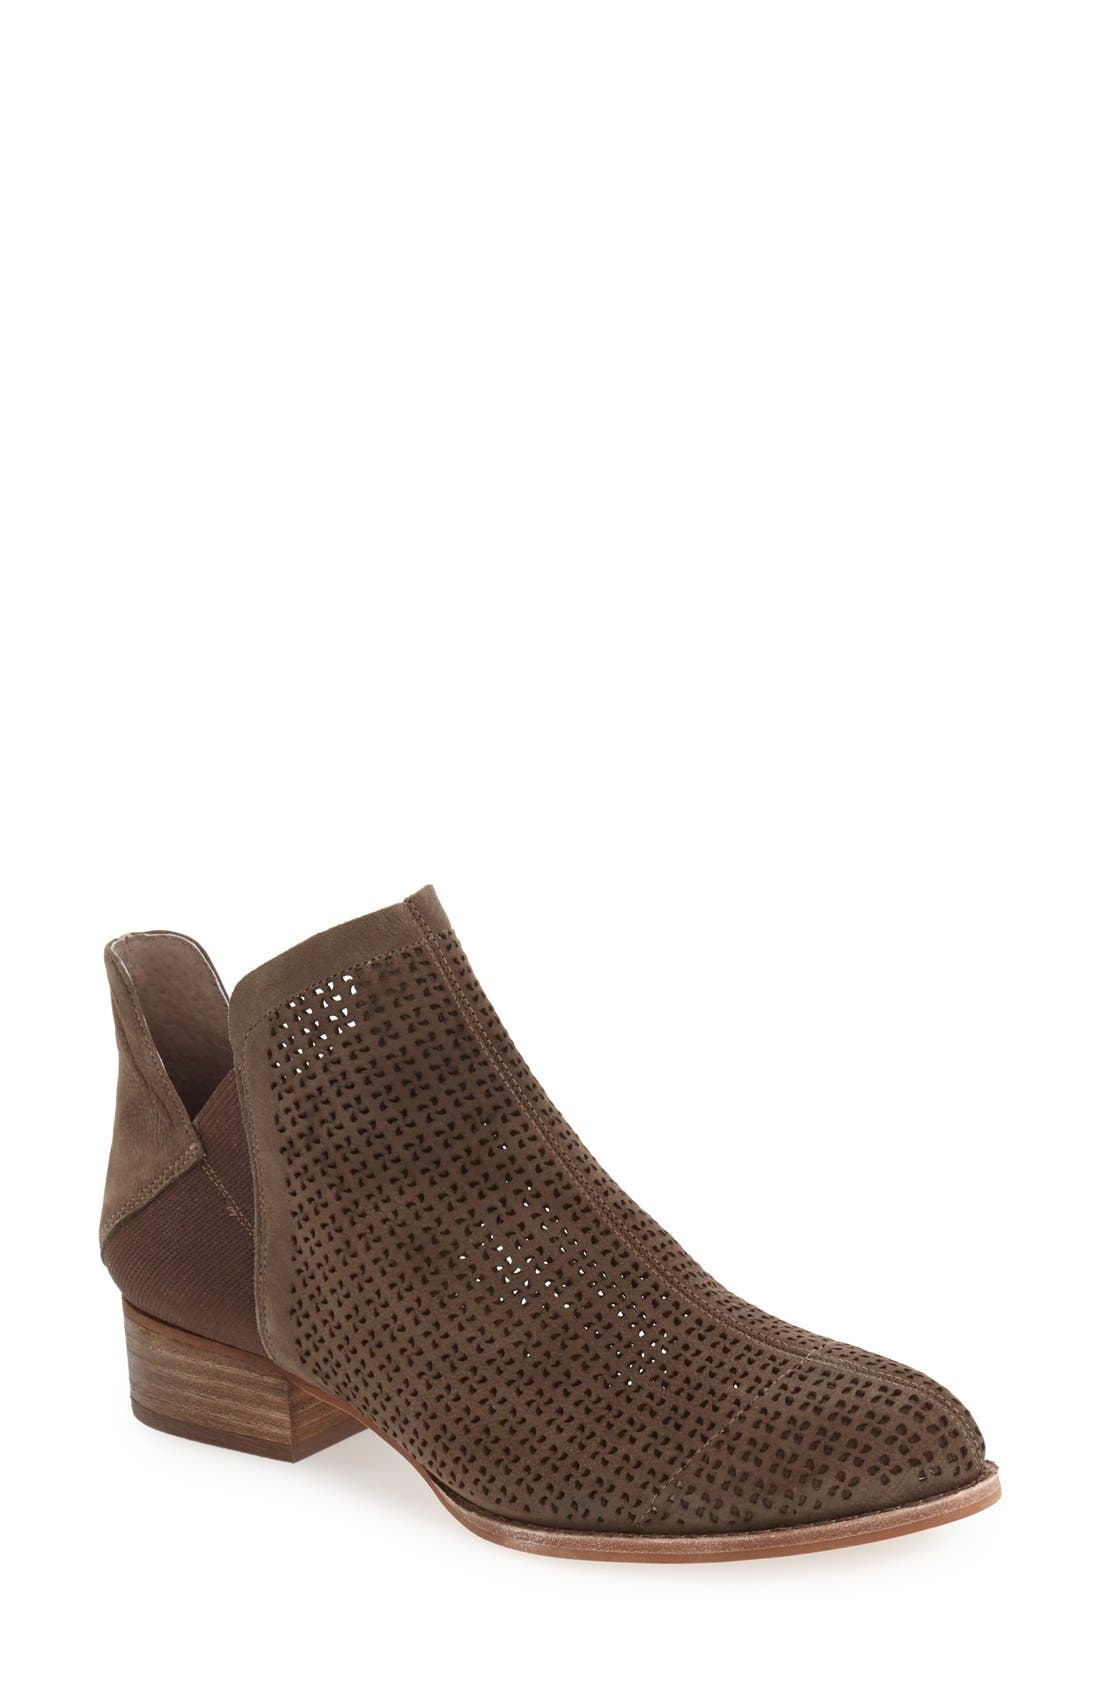 Alternate Image 1 Selected - Vince Camuto Celena Perforated Bootie (Women)